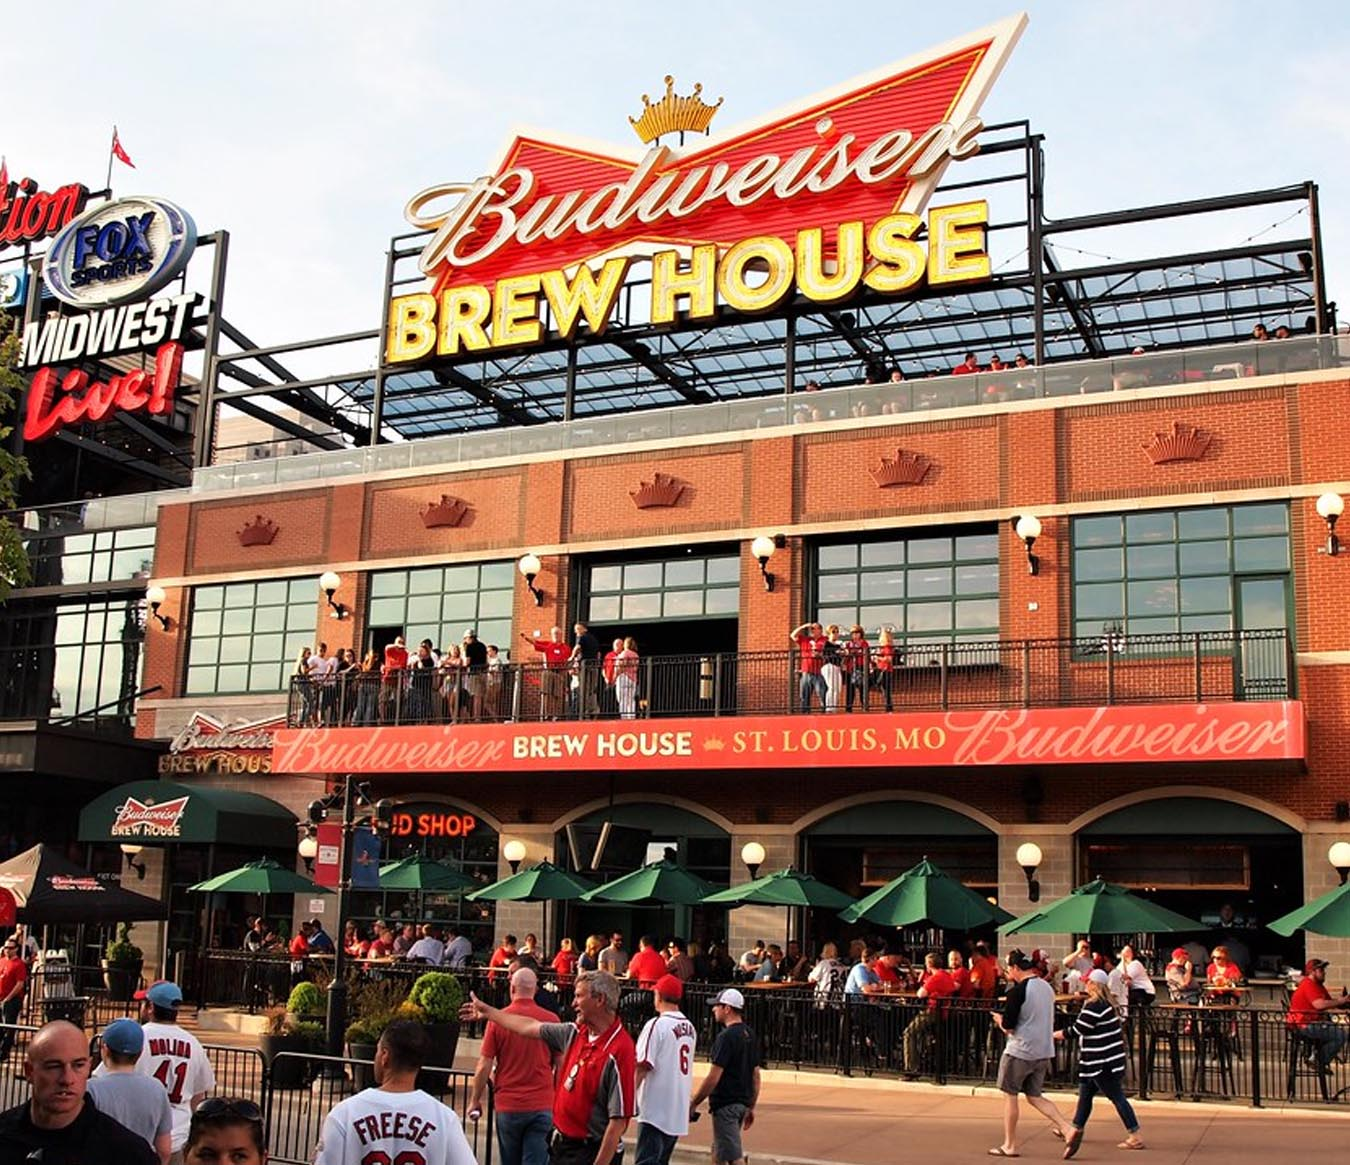 Where To Eat In St. Louis - Budweiser Brew House